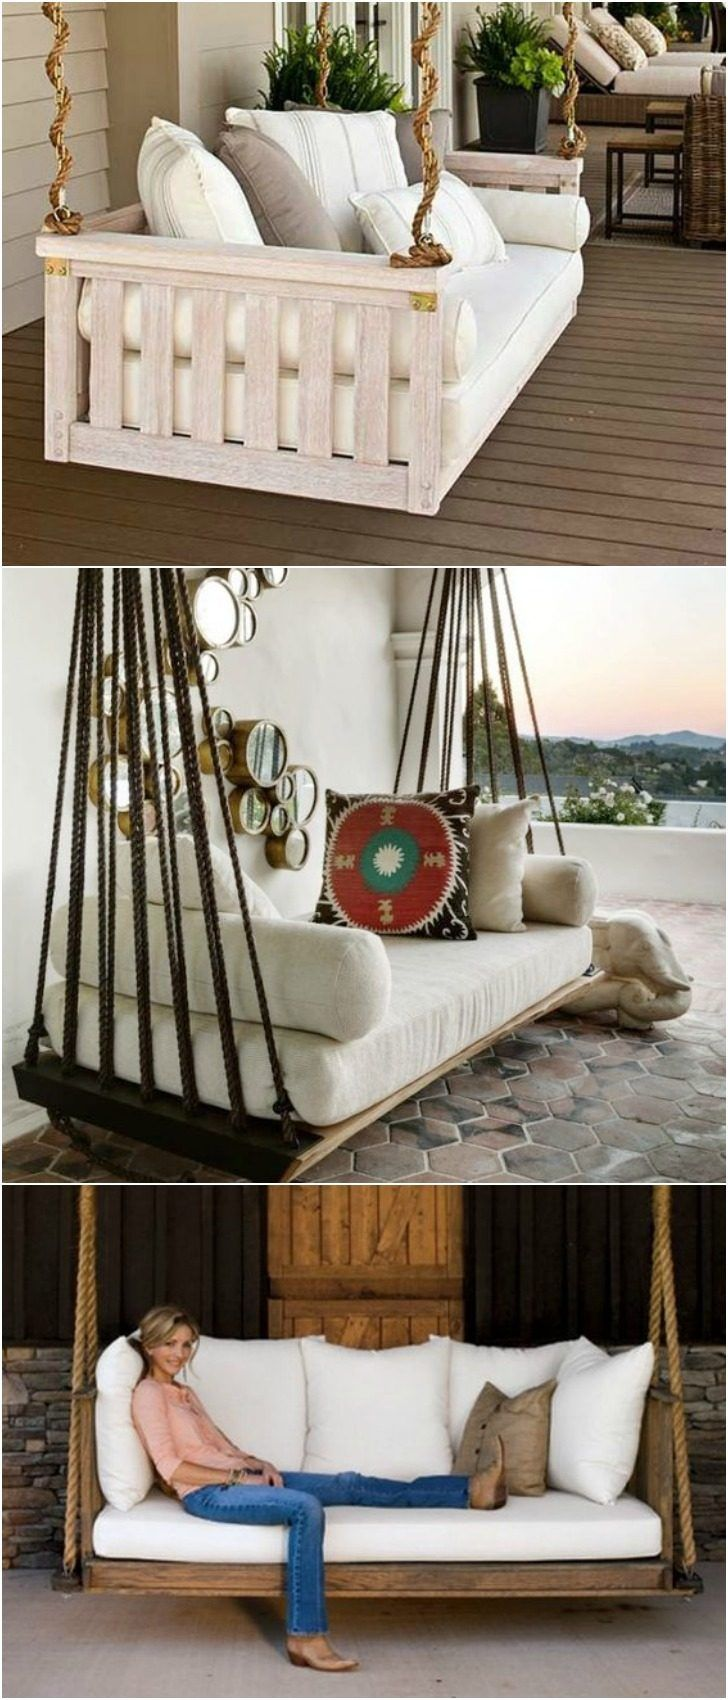 Captivating 7 DIY Outdoor Swings Thatu0027ll Make Warm Nights Even Better. #6 Is Just  Stunning